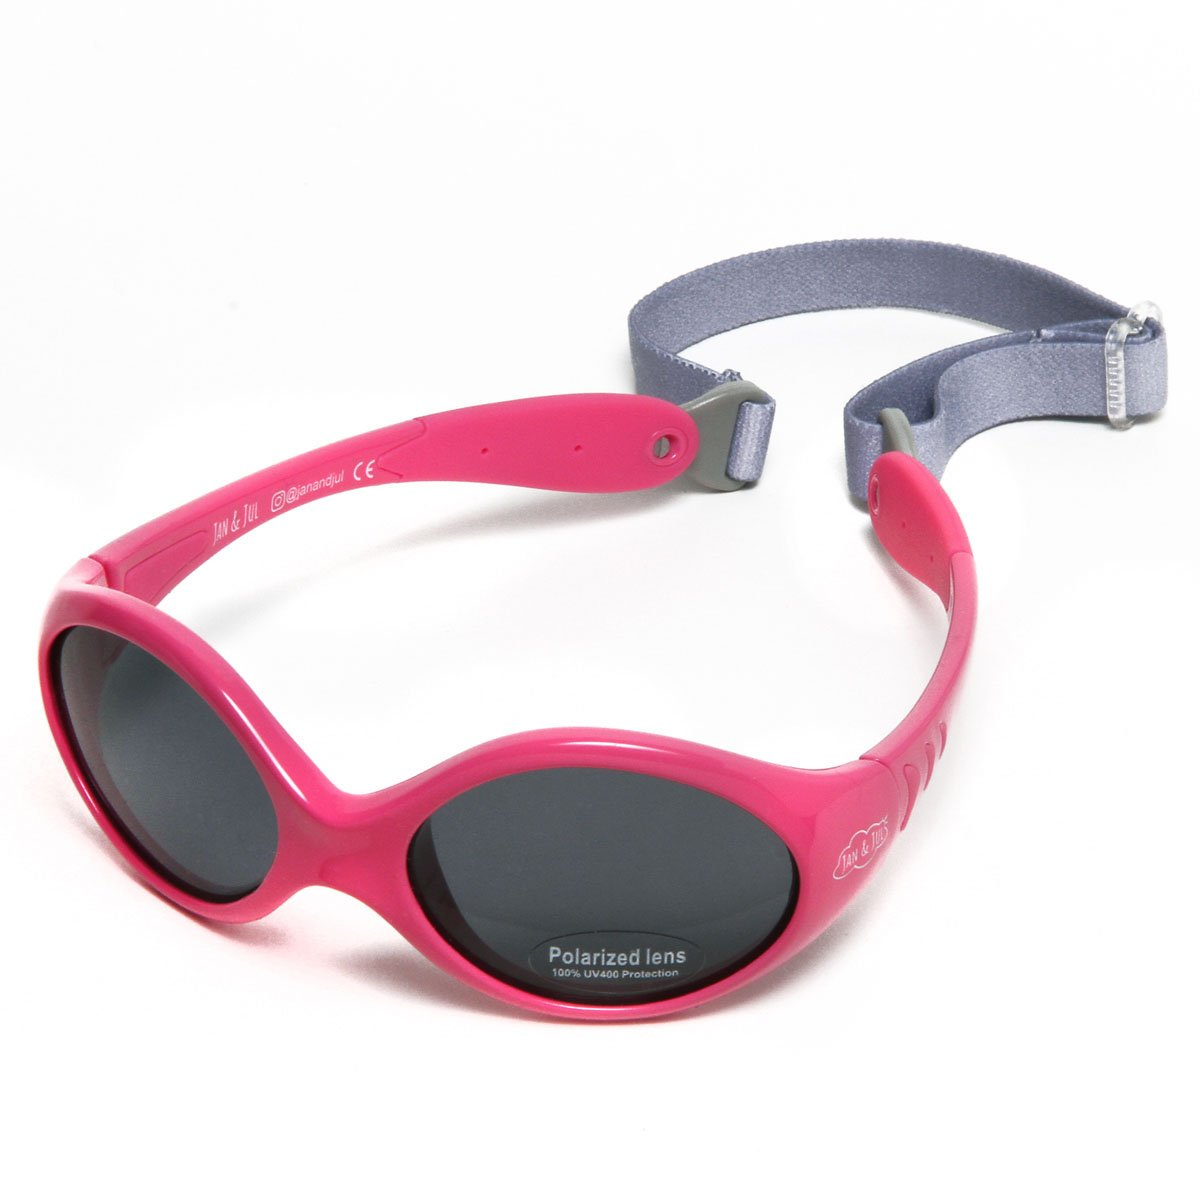 Baby Toddler Polarized Sunglasses With Strap 100% UV Block Twinklebelle Design Inc.